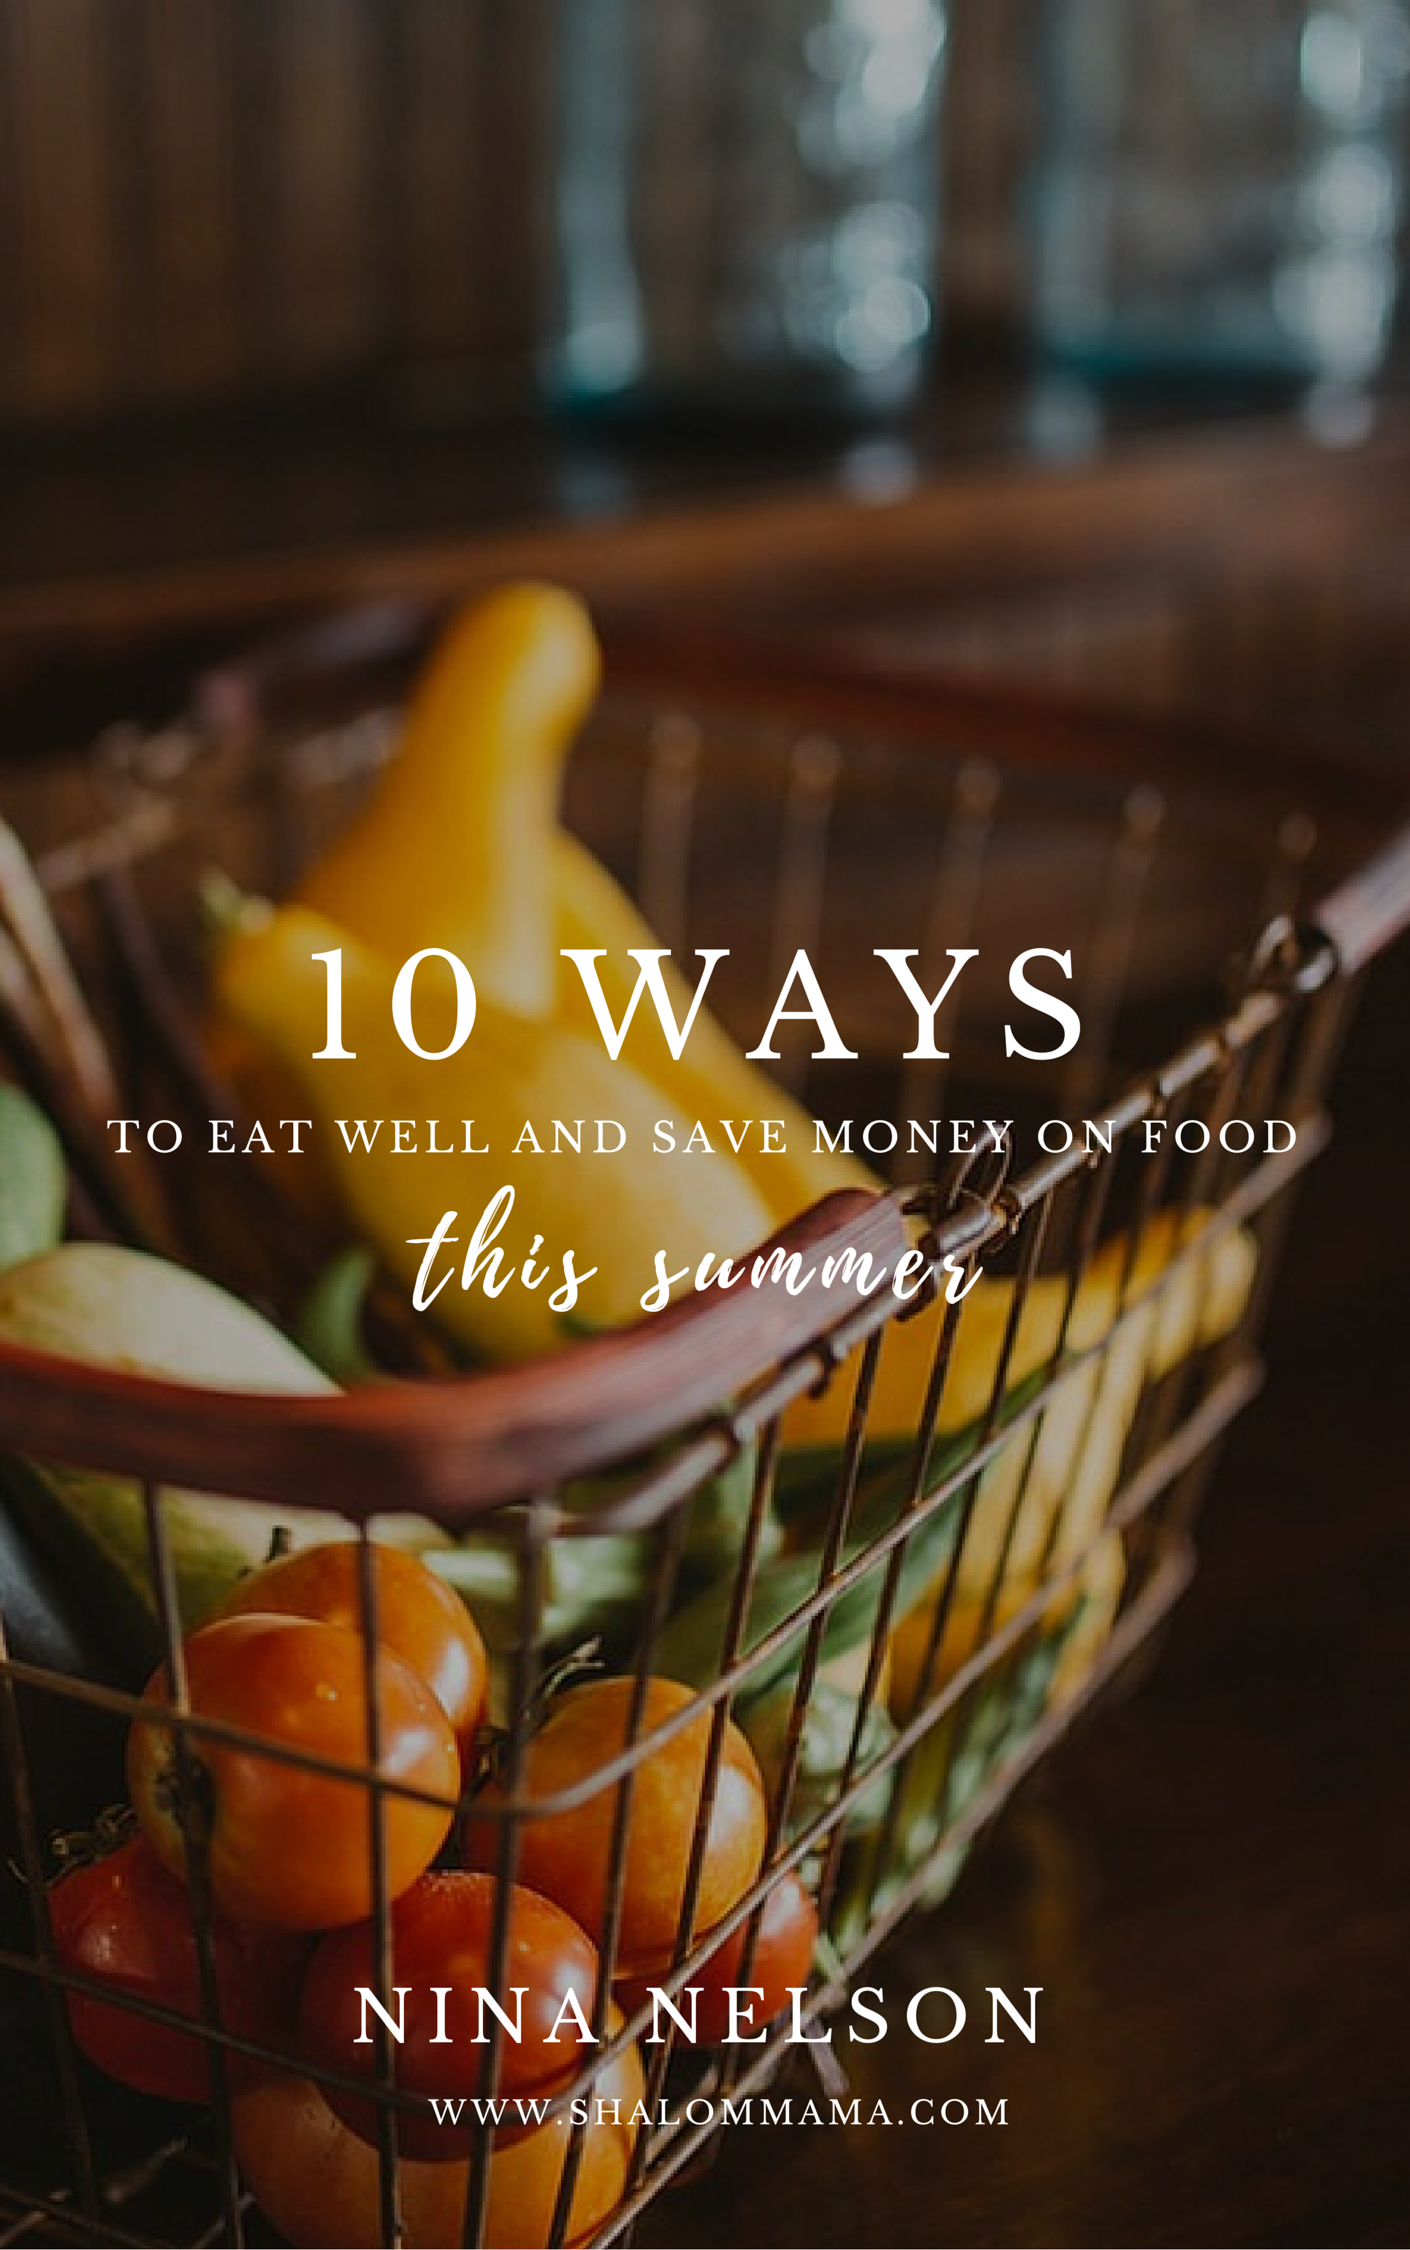 Cover of 10 ways to eat well and save money on food this summer